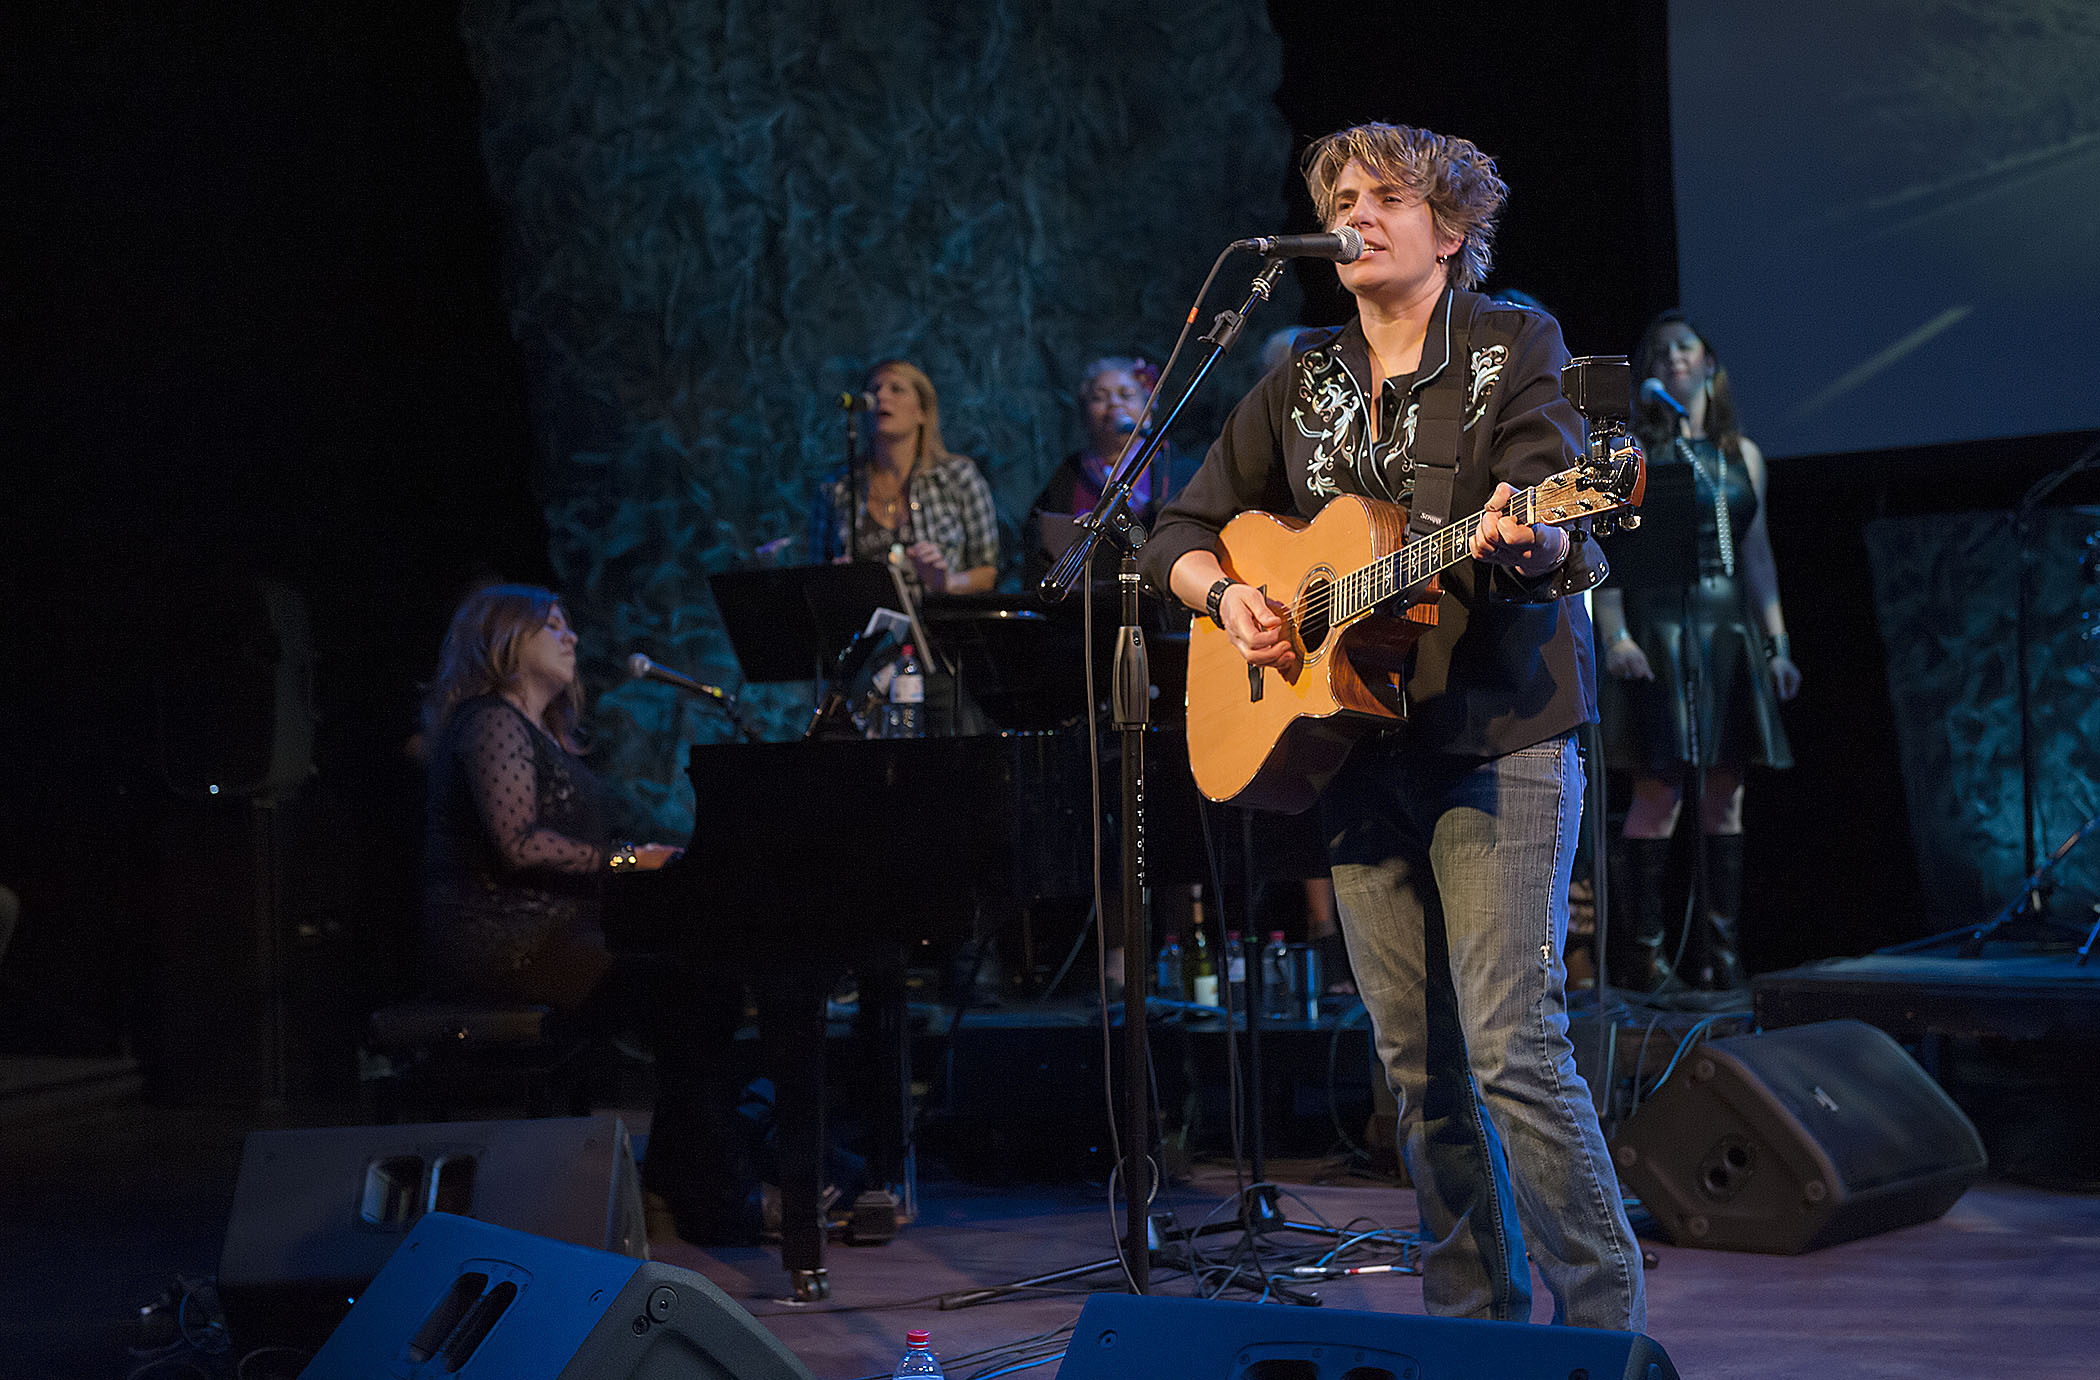 Inda Eaton and Friends performing at Bay Street Theater in Sag Harbor in 2016.